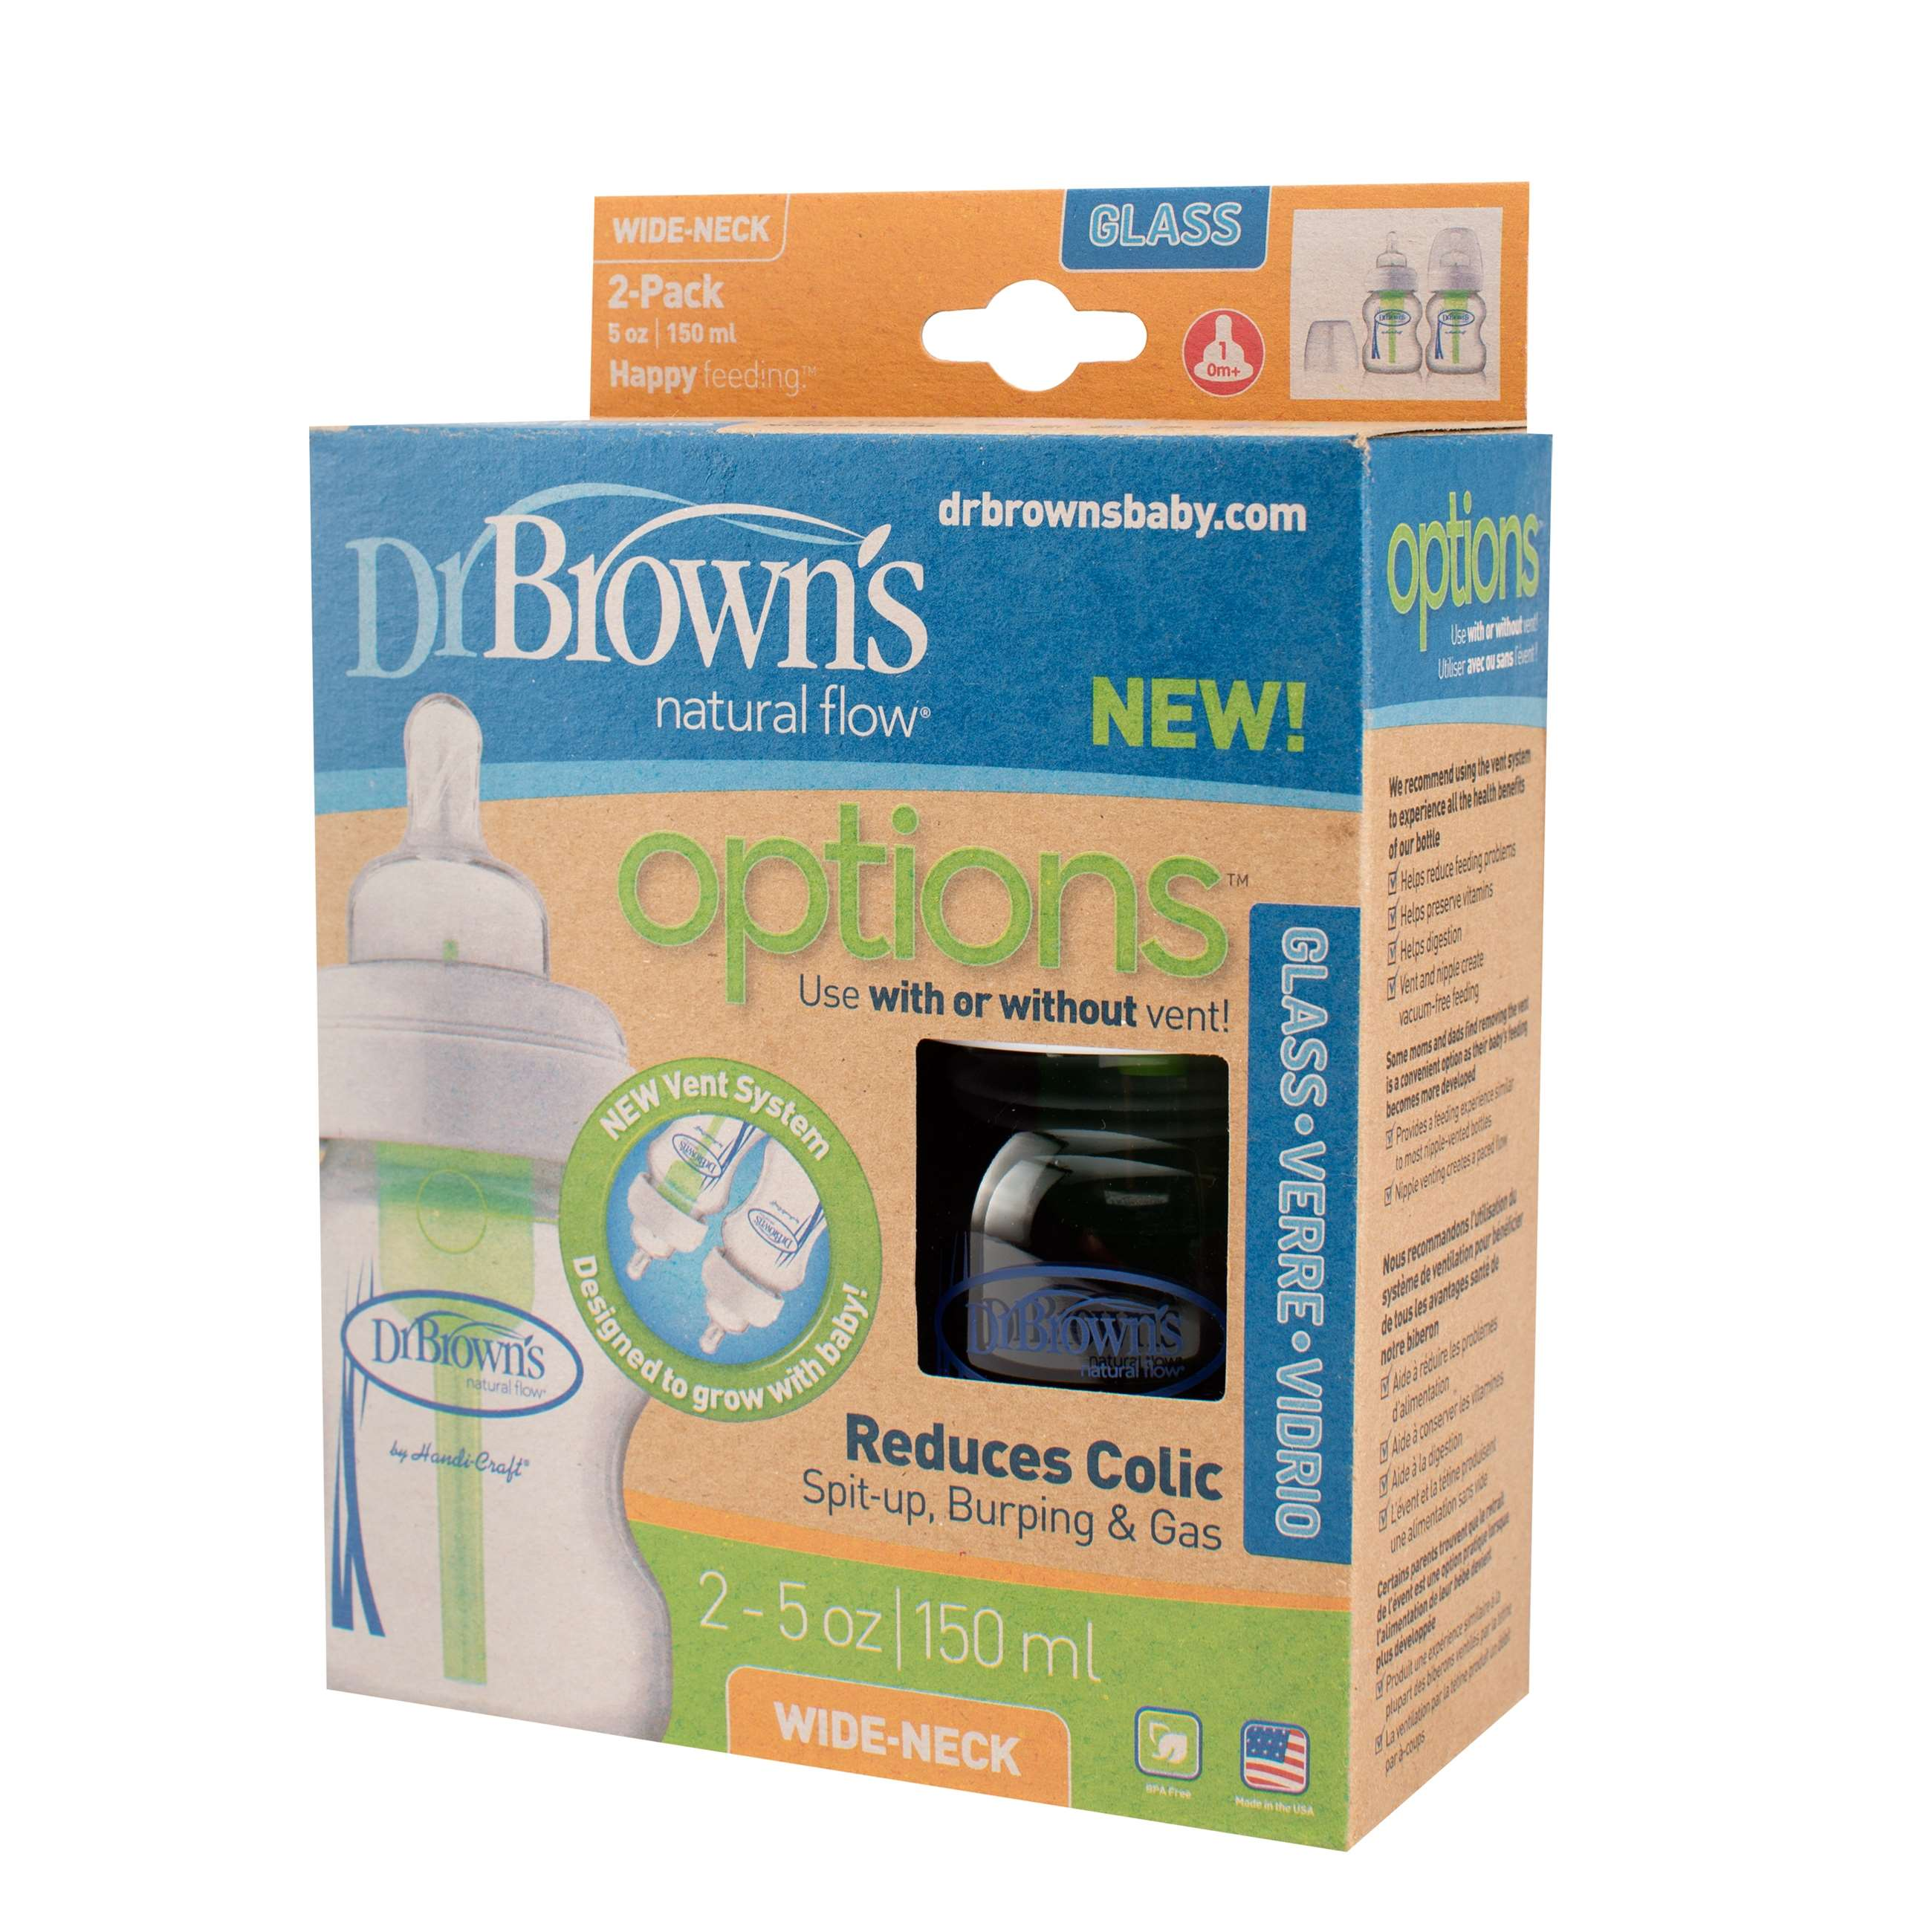 9501 - drbrown glas 150mlx2 options bred hals wb5200_pkg